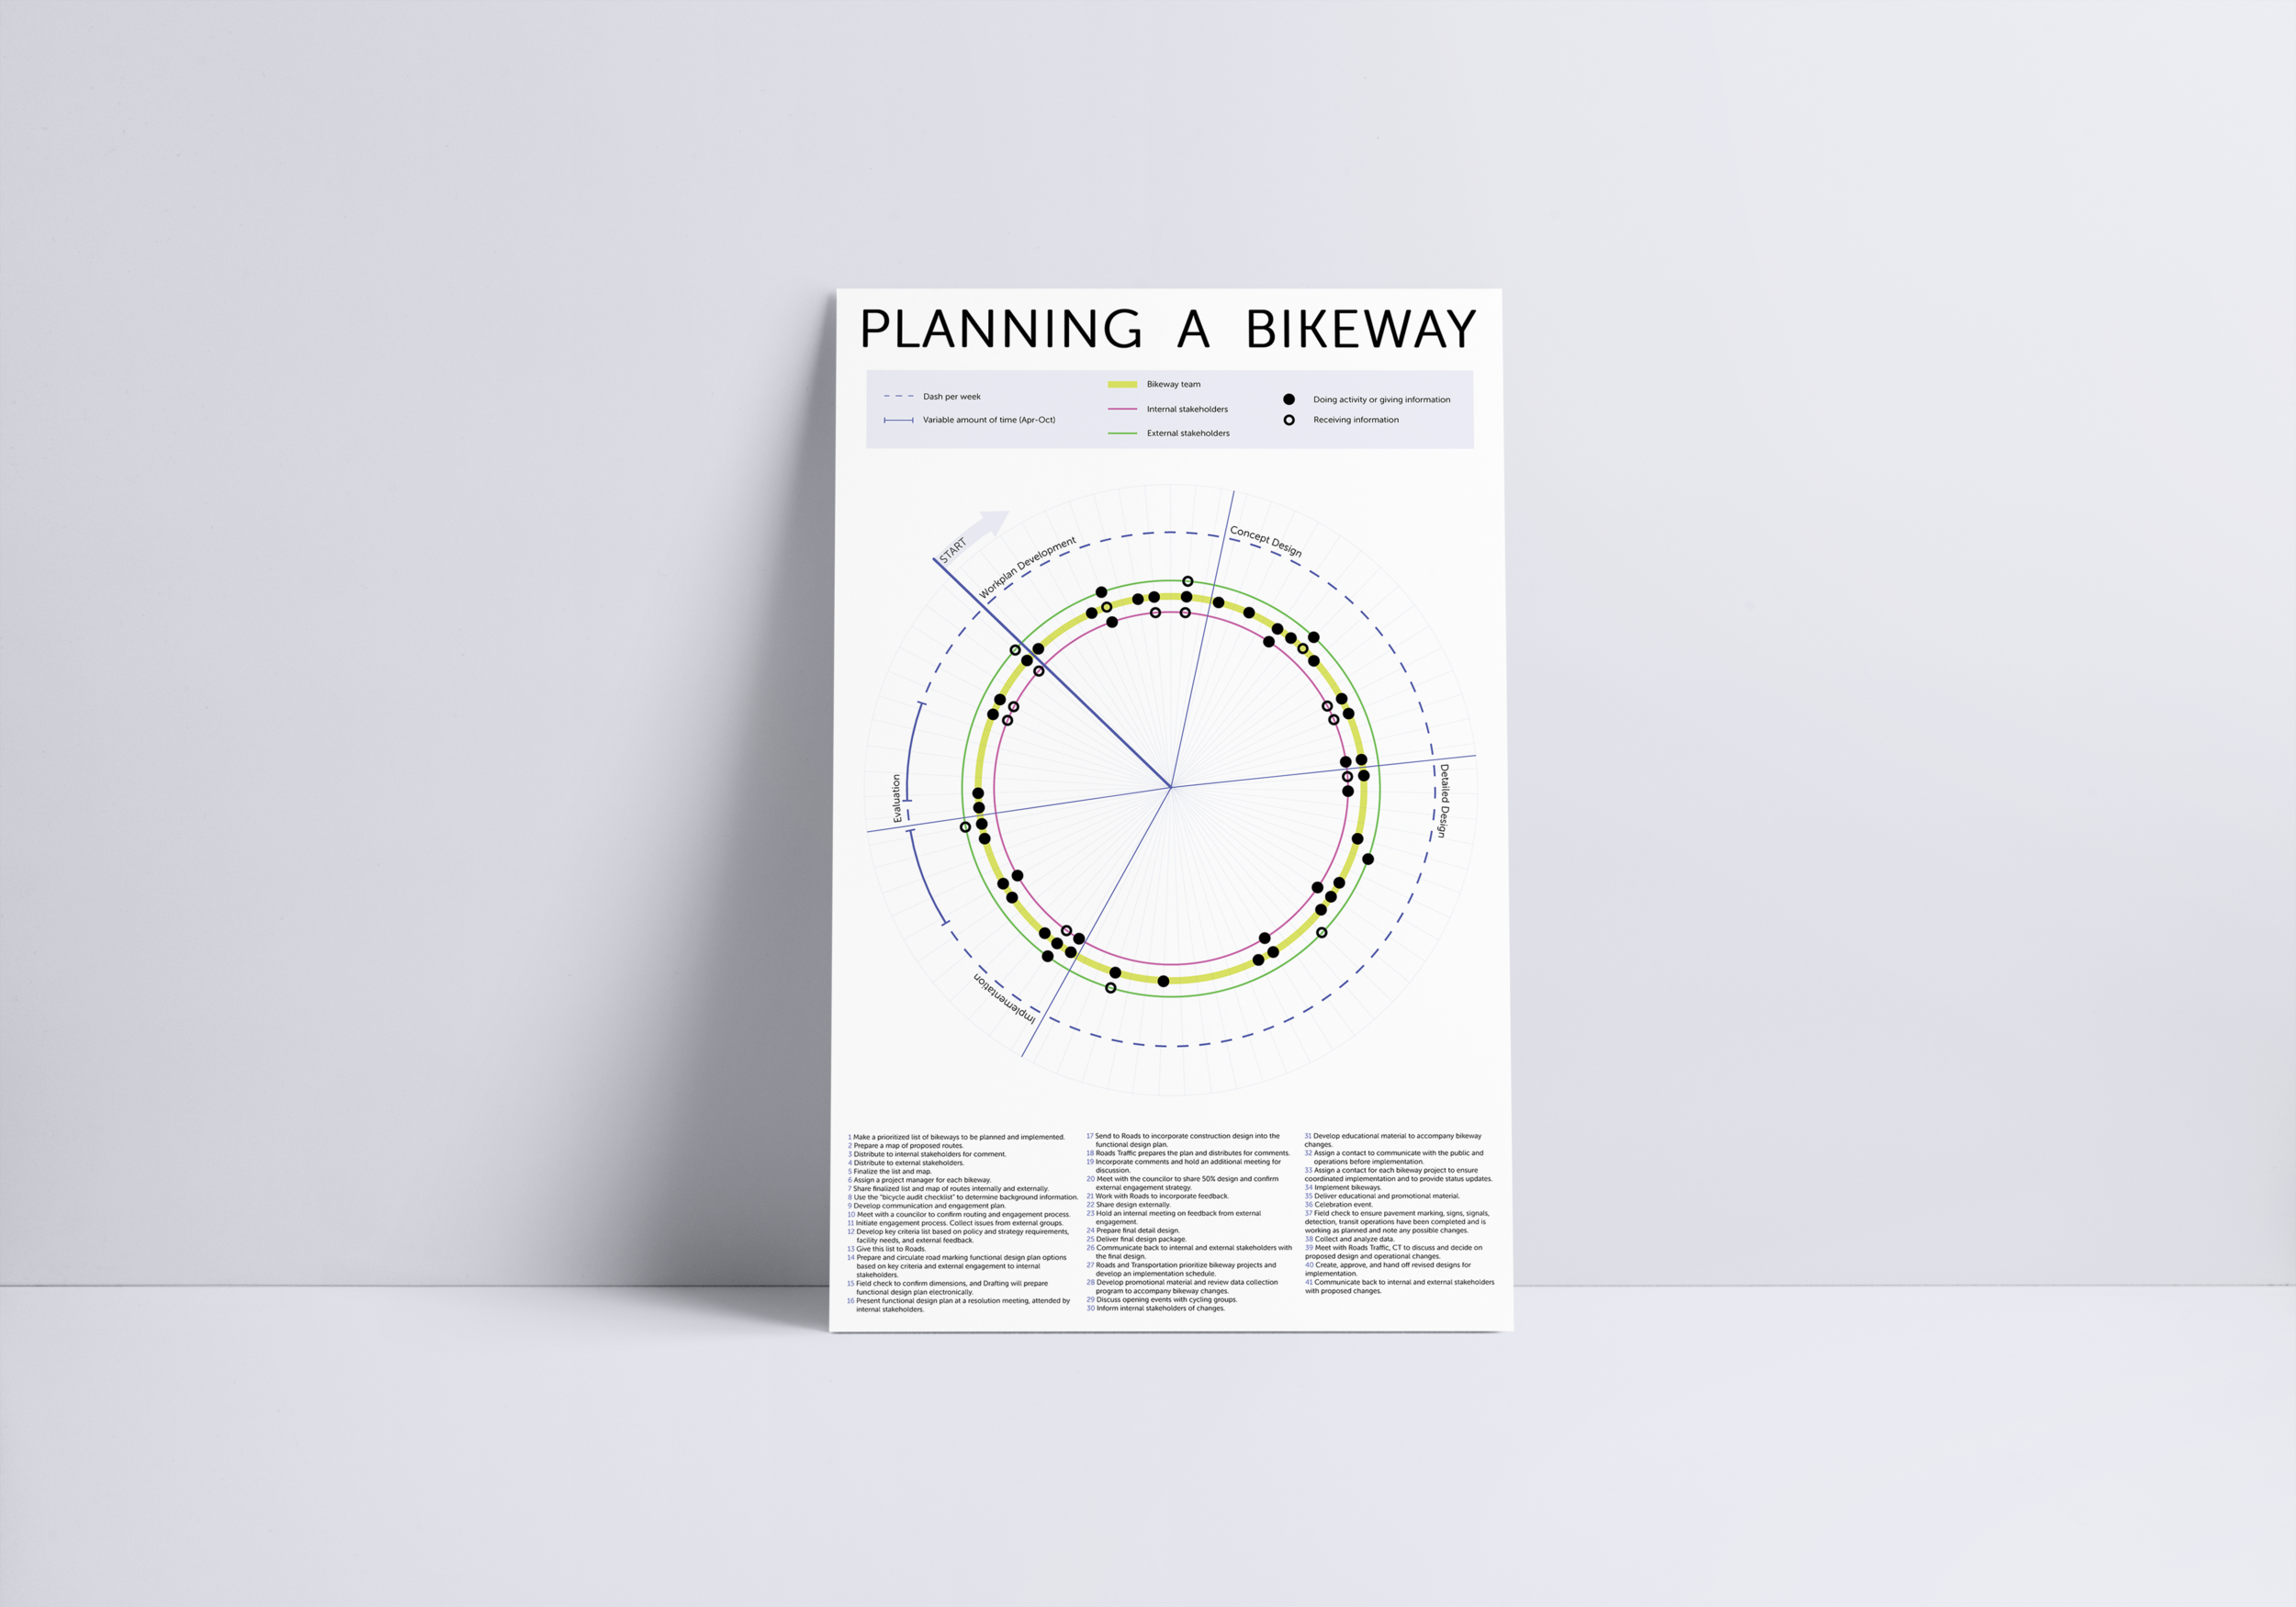 PlanningABikeway_SystemMap_MockUp_GreyBackground_Full.png